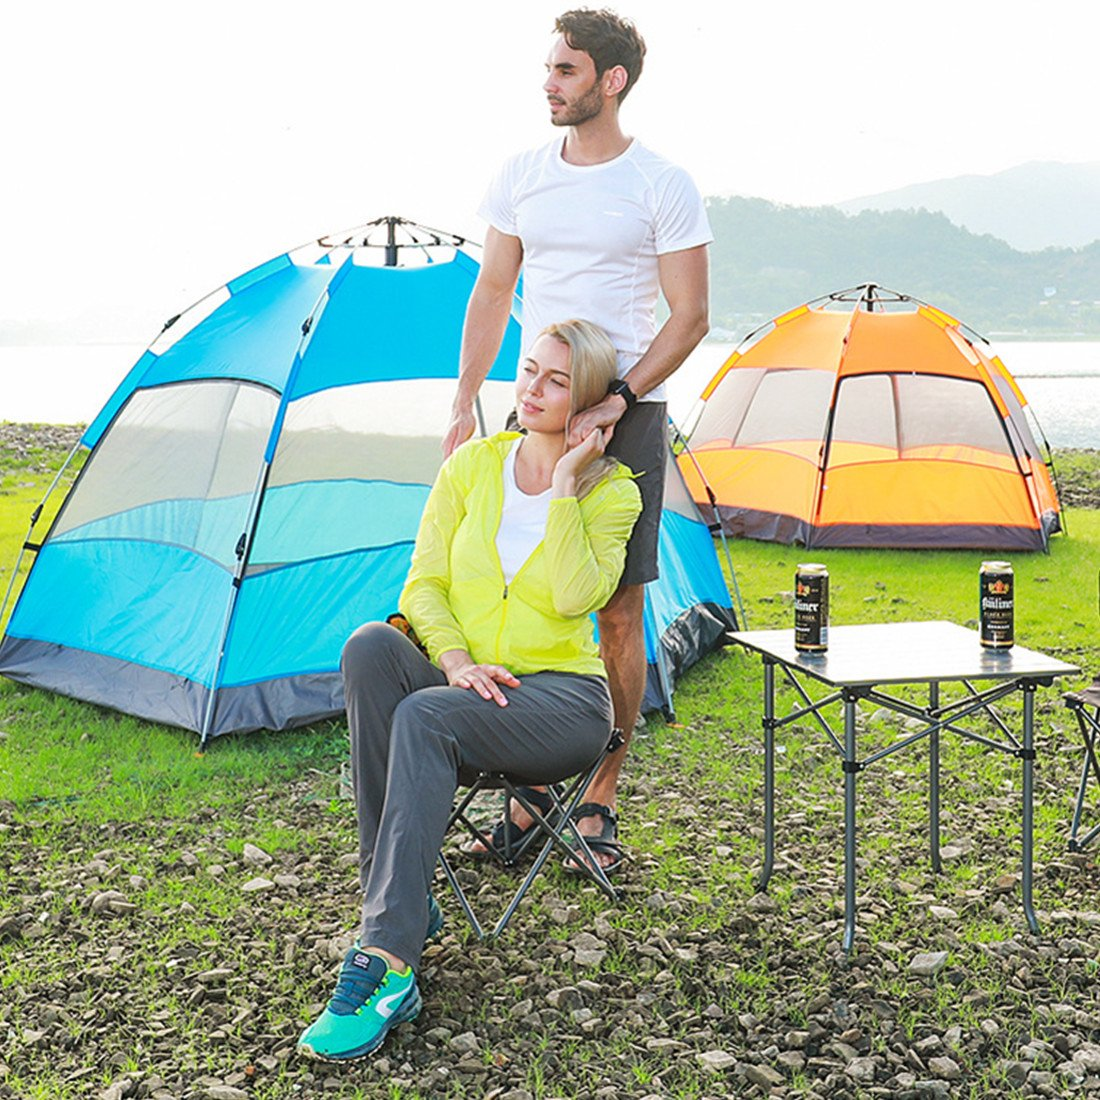 Double Hexagonal Beach Automatic Tent Outdoor 3-4 People Pop up Tent//4-6 People Pop up Tent Beach Tent large space Camping Tent Sun protection